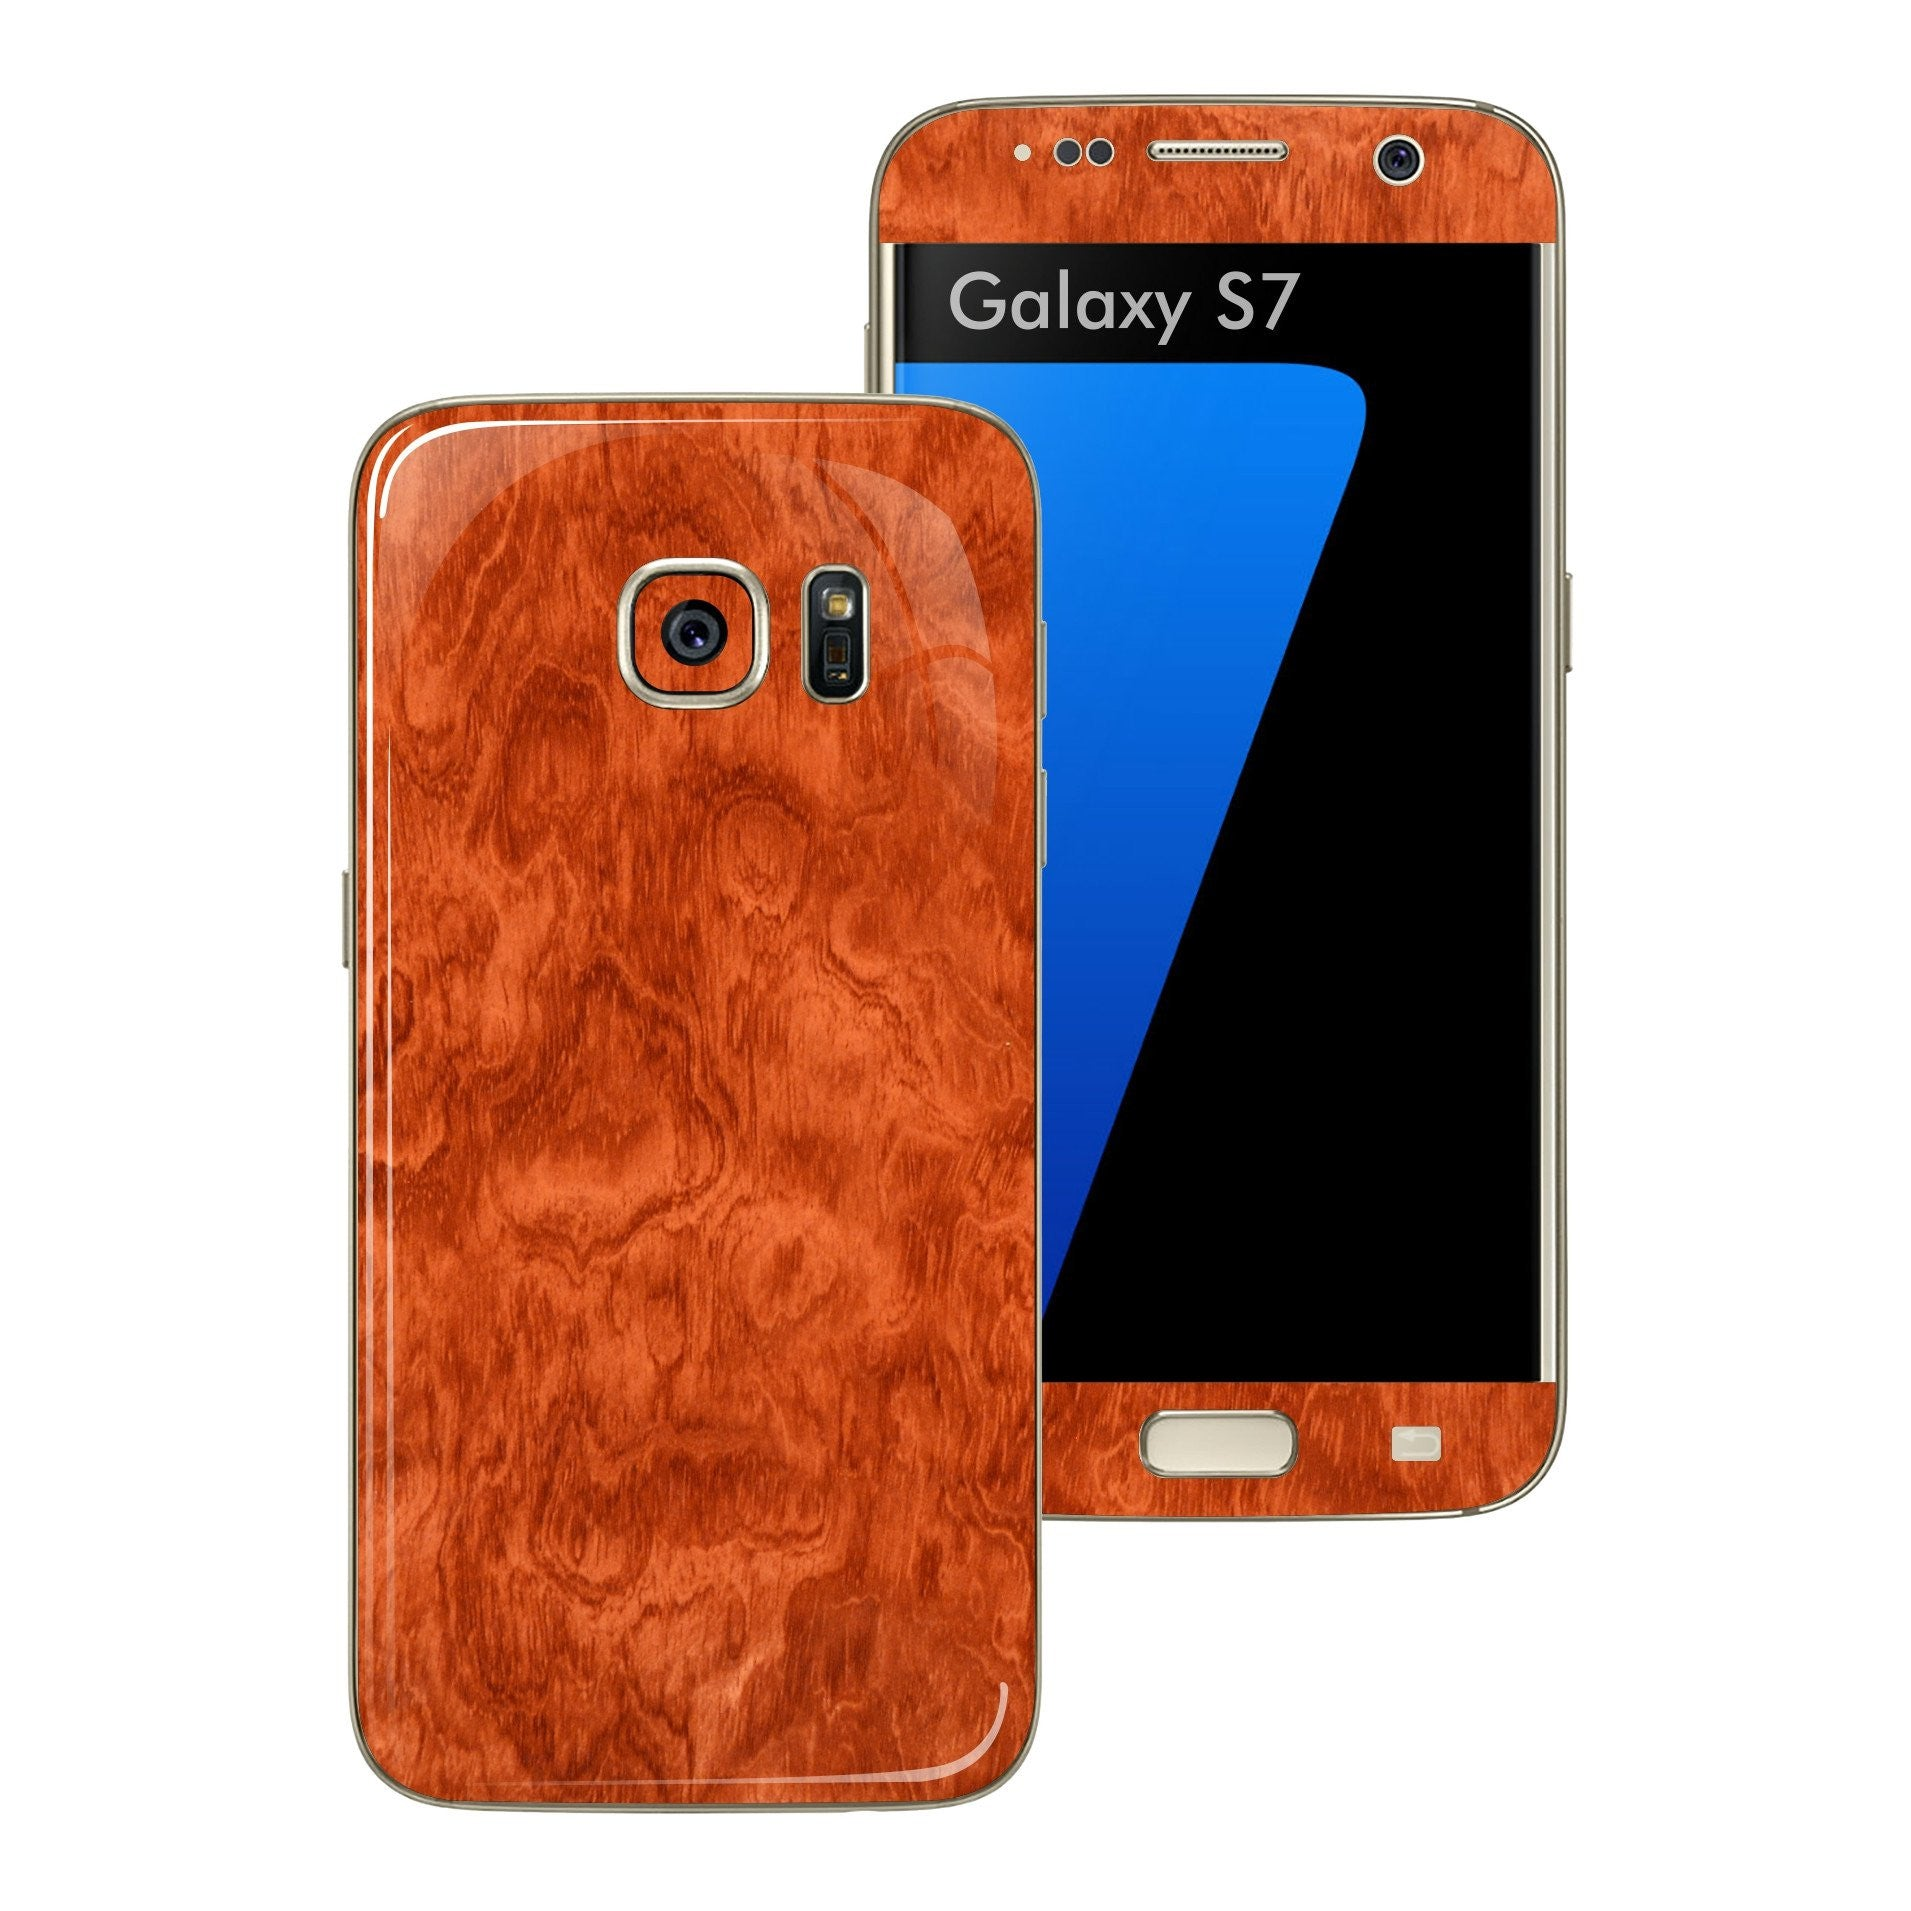 Samsung Galaxy S7 Luxuria Mahogany Wood Wooden Glossy Skin Wrap Decal Cover by EASYSKINZ